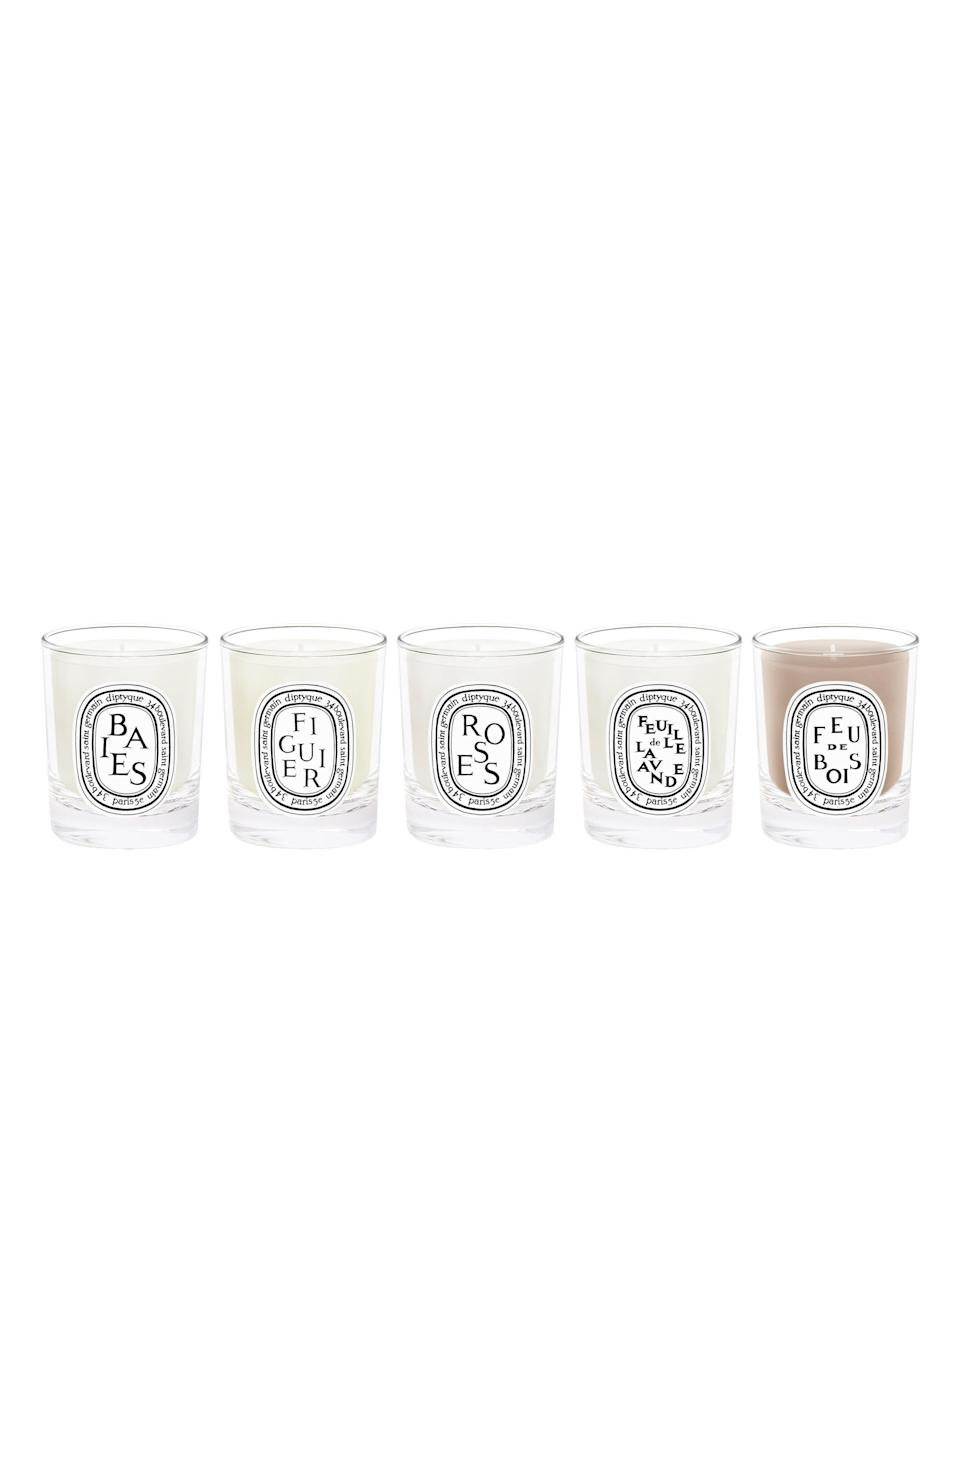 """<p><strong>Diptyque</strong></p><p>nordstrom.com</p><p><a href=""""https://go.redirectingat.com?id=74968X1596630&url=https%3A%2F%2Fwww.nordstrom.com%2Fs%2Fdiptyque-travel-size-scented-candle-set-82-value%2F5894239&sref=https%3A%2F%2Fwww.harpersbazaar.com%2Fbeauty%2Fg36991550%2Fnordstrom-anniversary-sale-beauty-deals%2F"""" rel=""""nofollow noopener"""" target=""""_blank"""" data-ylk=""""slk:Shop Now"""" class=""""link rapid-noclick-resp"""">Shop Now</a></p><p><strong>Sale: $60</strong></p><p><strong>Value: $82</strong></p><p>Luxe candle lovers, rejoice. This Anniversary Sale-exclusive set is comprised of five of Diptyque's all-time most popular scents. Each travel-sized Diptyque candle comes out to only $12 with this deal—so don't think twice.</p>"""